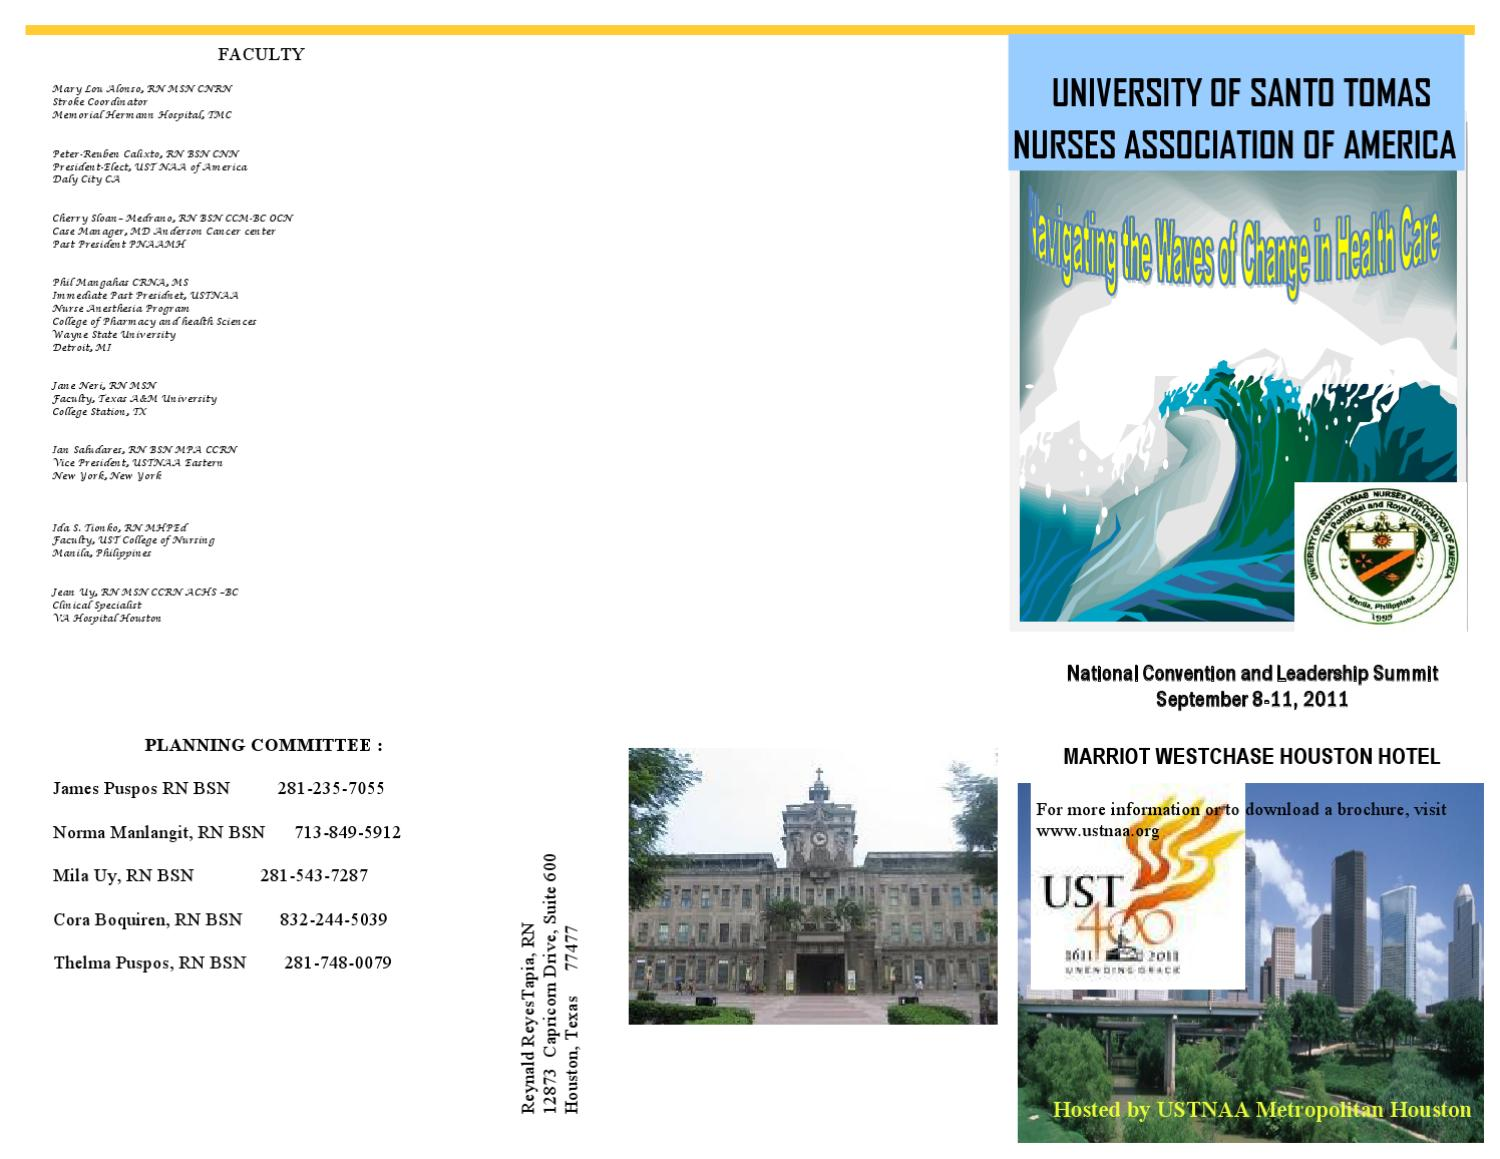 university bookstore case by shiyun lu Textbooks skip textbooks find textbooks textbook rentals sell back textbooks  indiana university bloomington official bookstore  contact us.